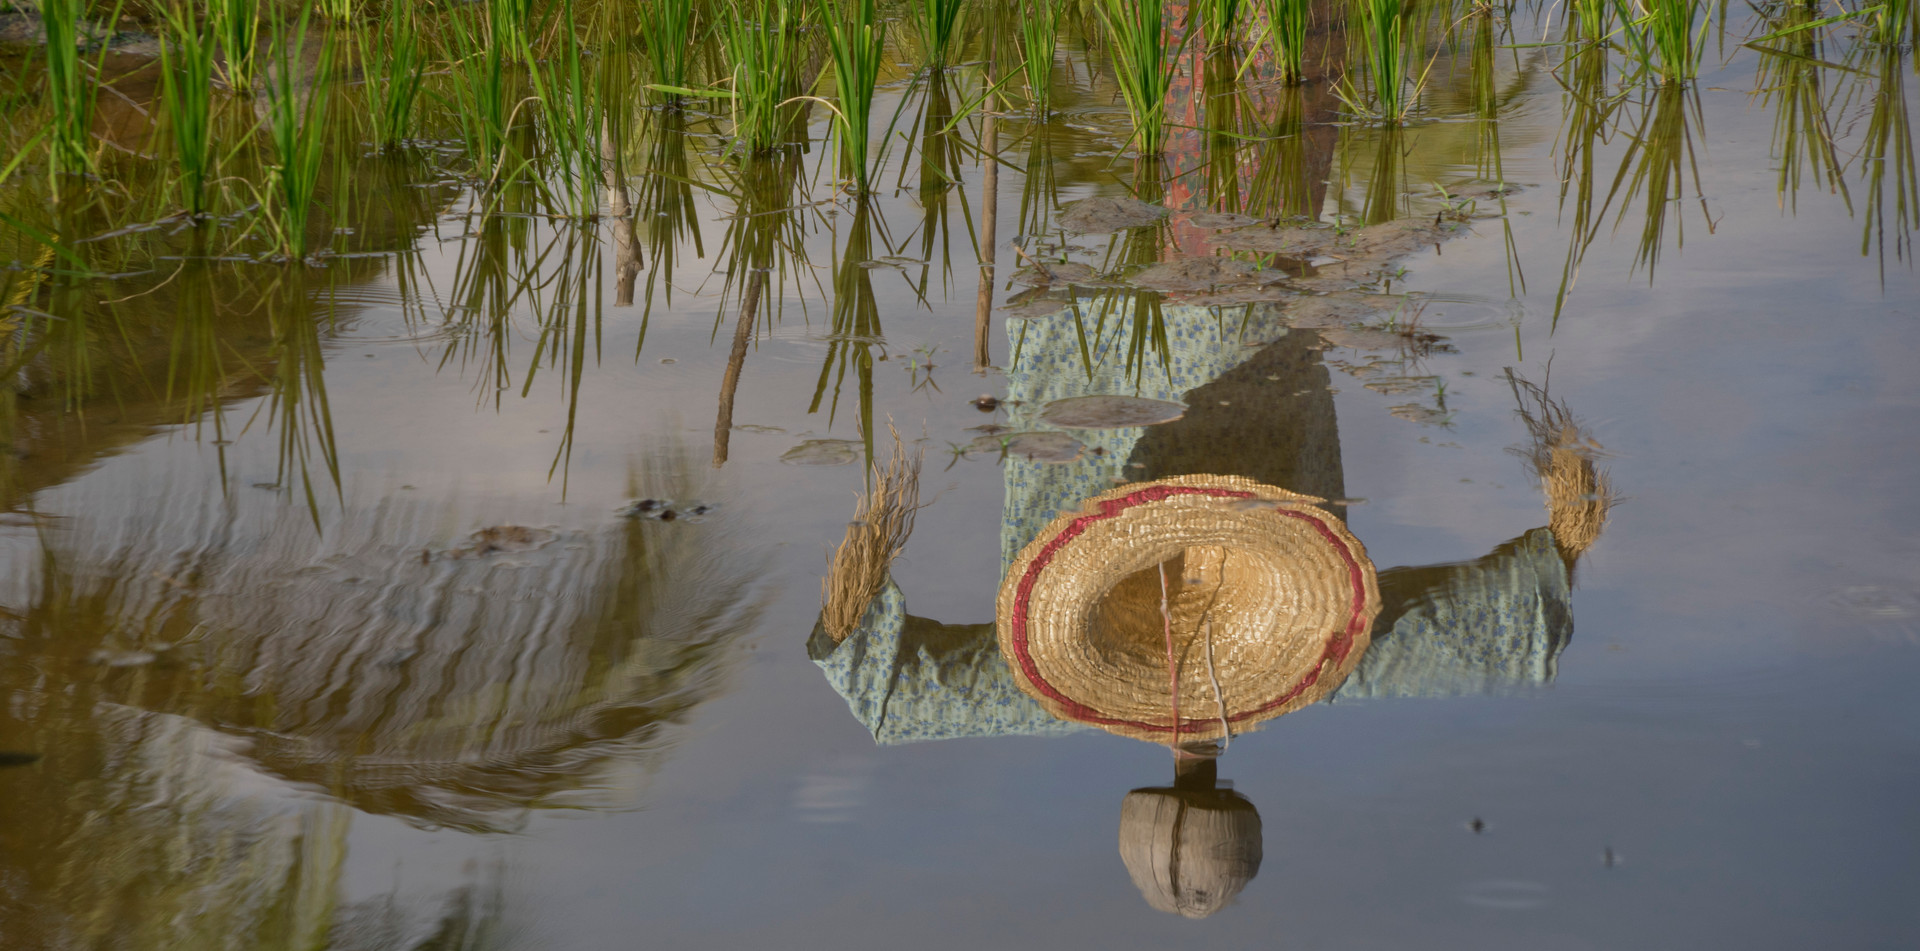 Scarecrow in traditional dress in a rice paddy field in Malaysia